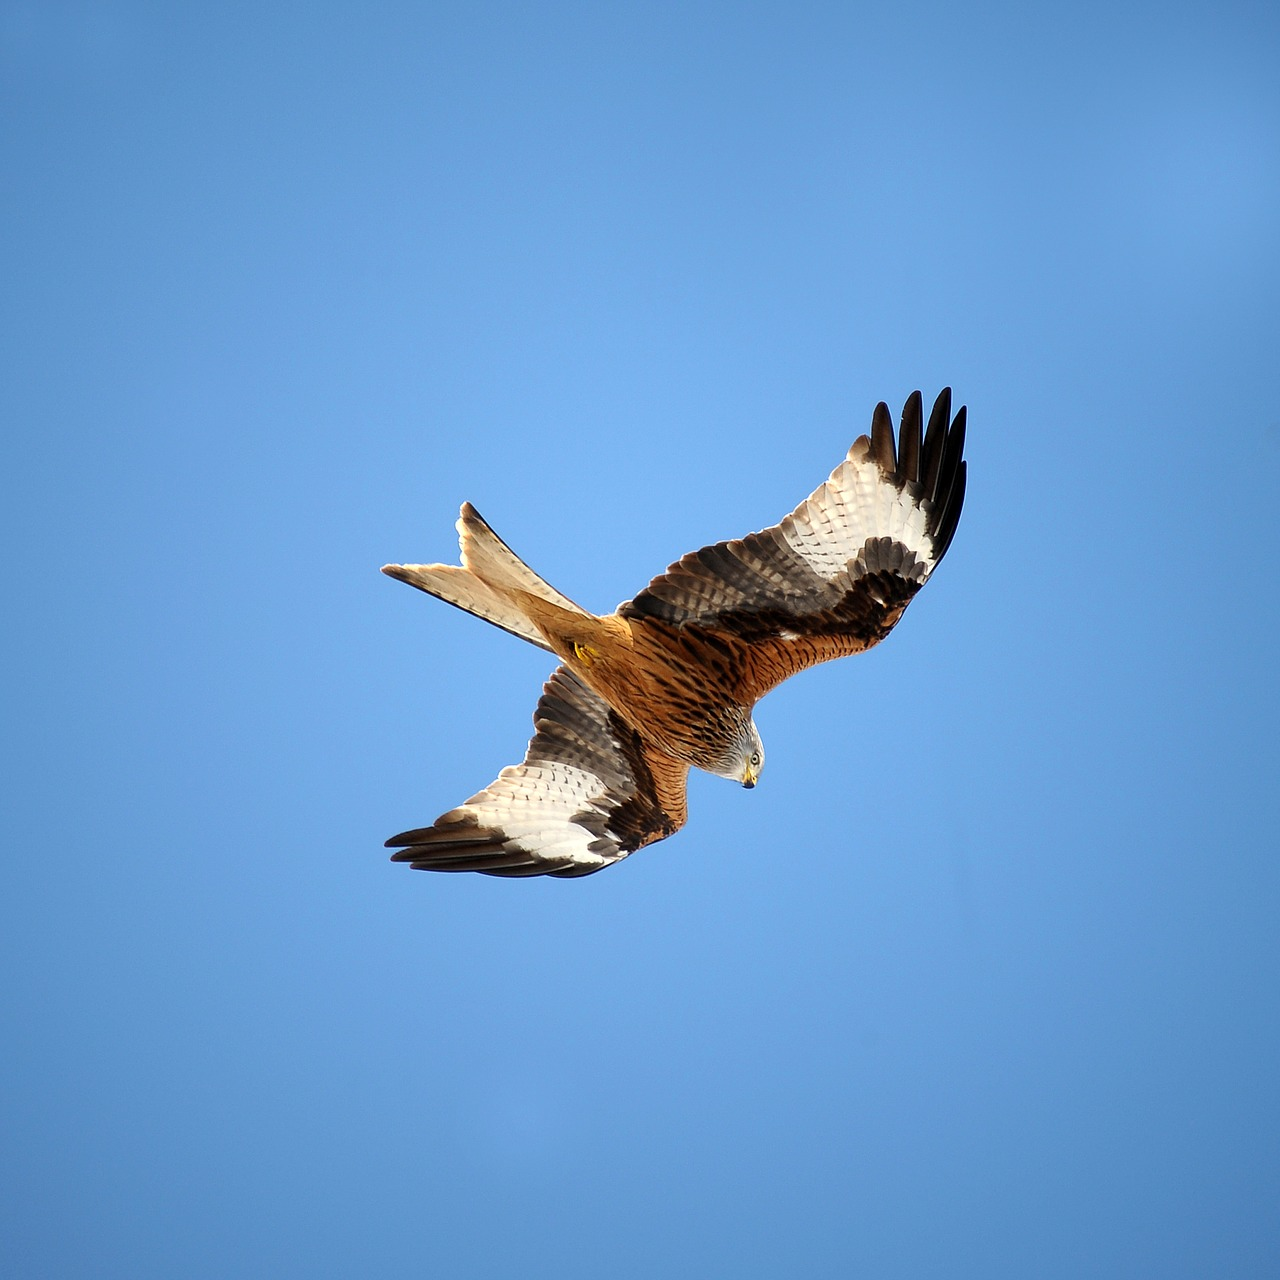 Meet the red kite, a predatory bird experiencing some hardship in Europe.